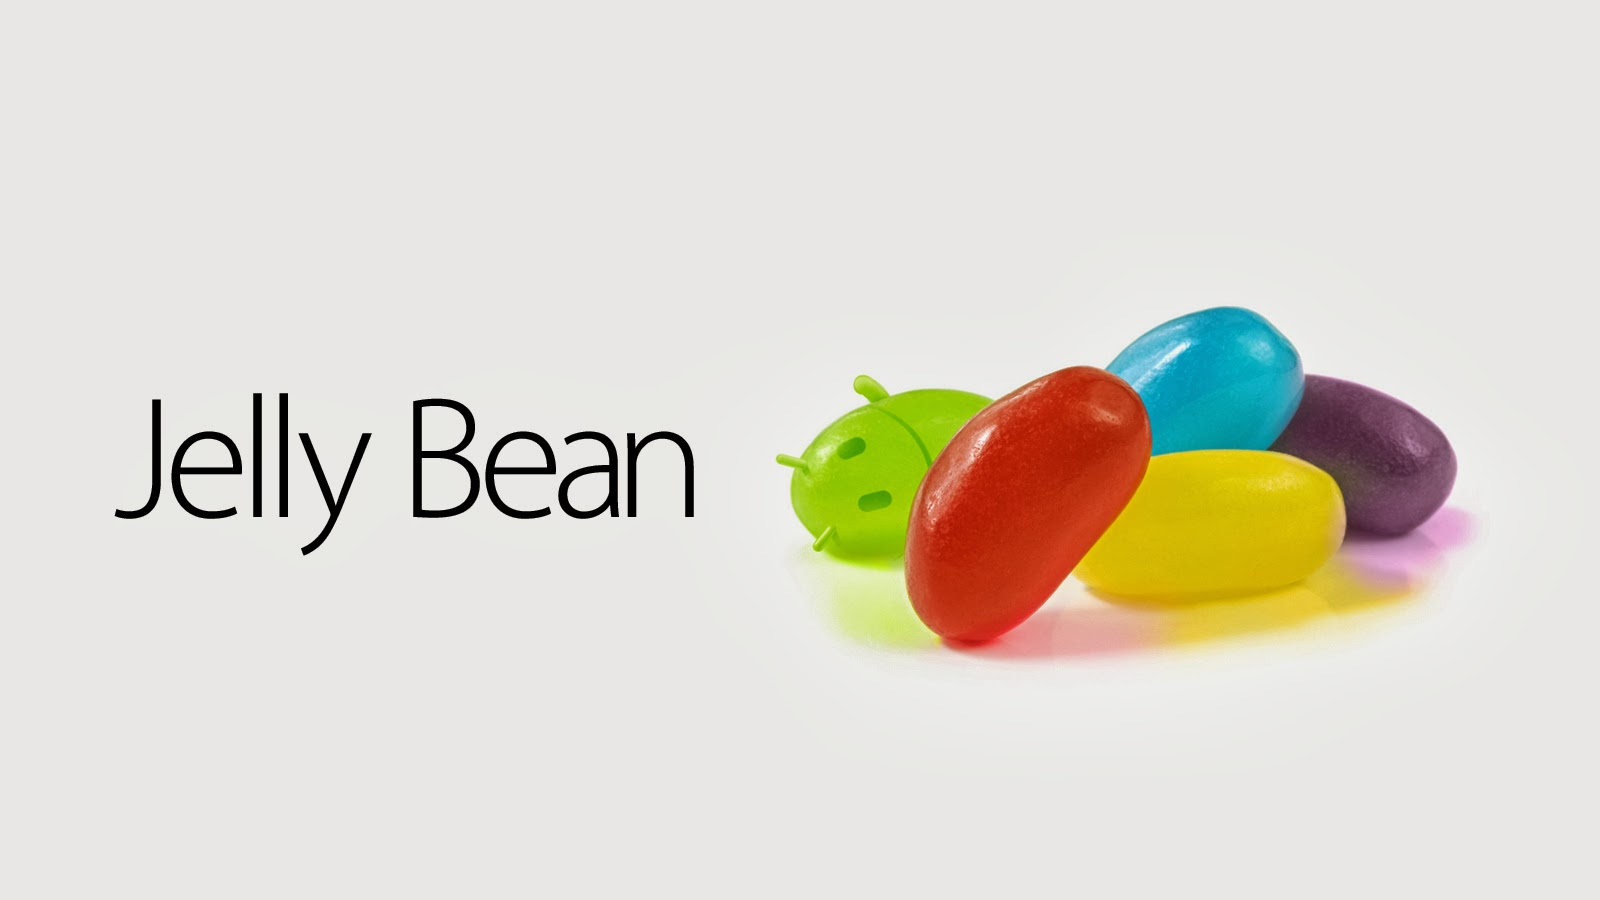 CARA UPGRADE SAMSUNG GALAXY ACE 2 GINGERBREAD KE JELLY BEAN